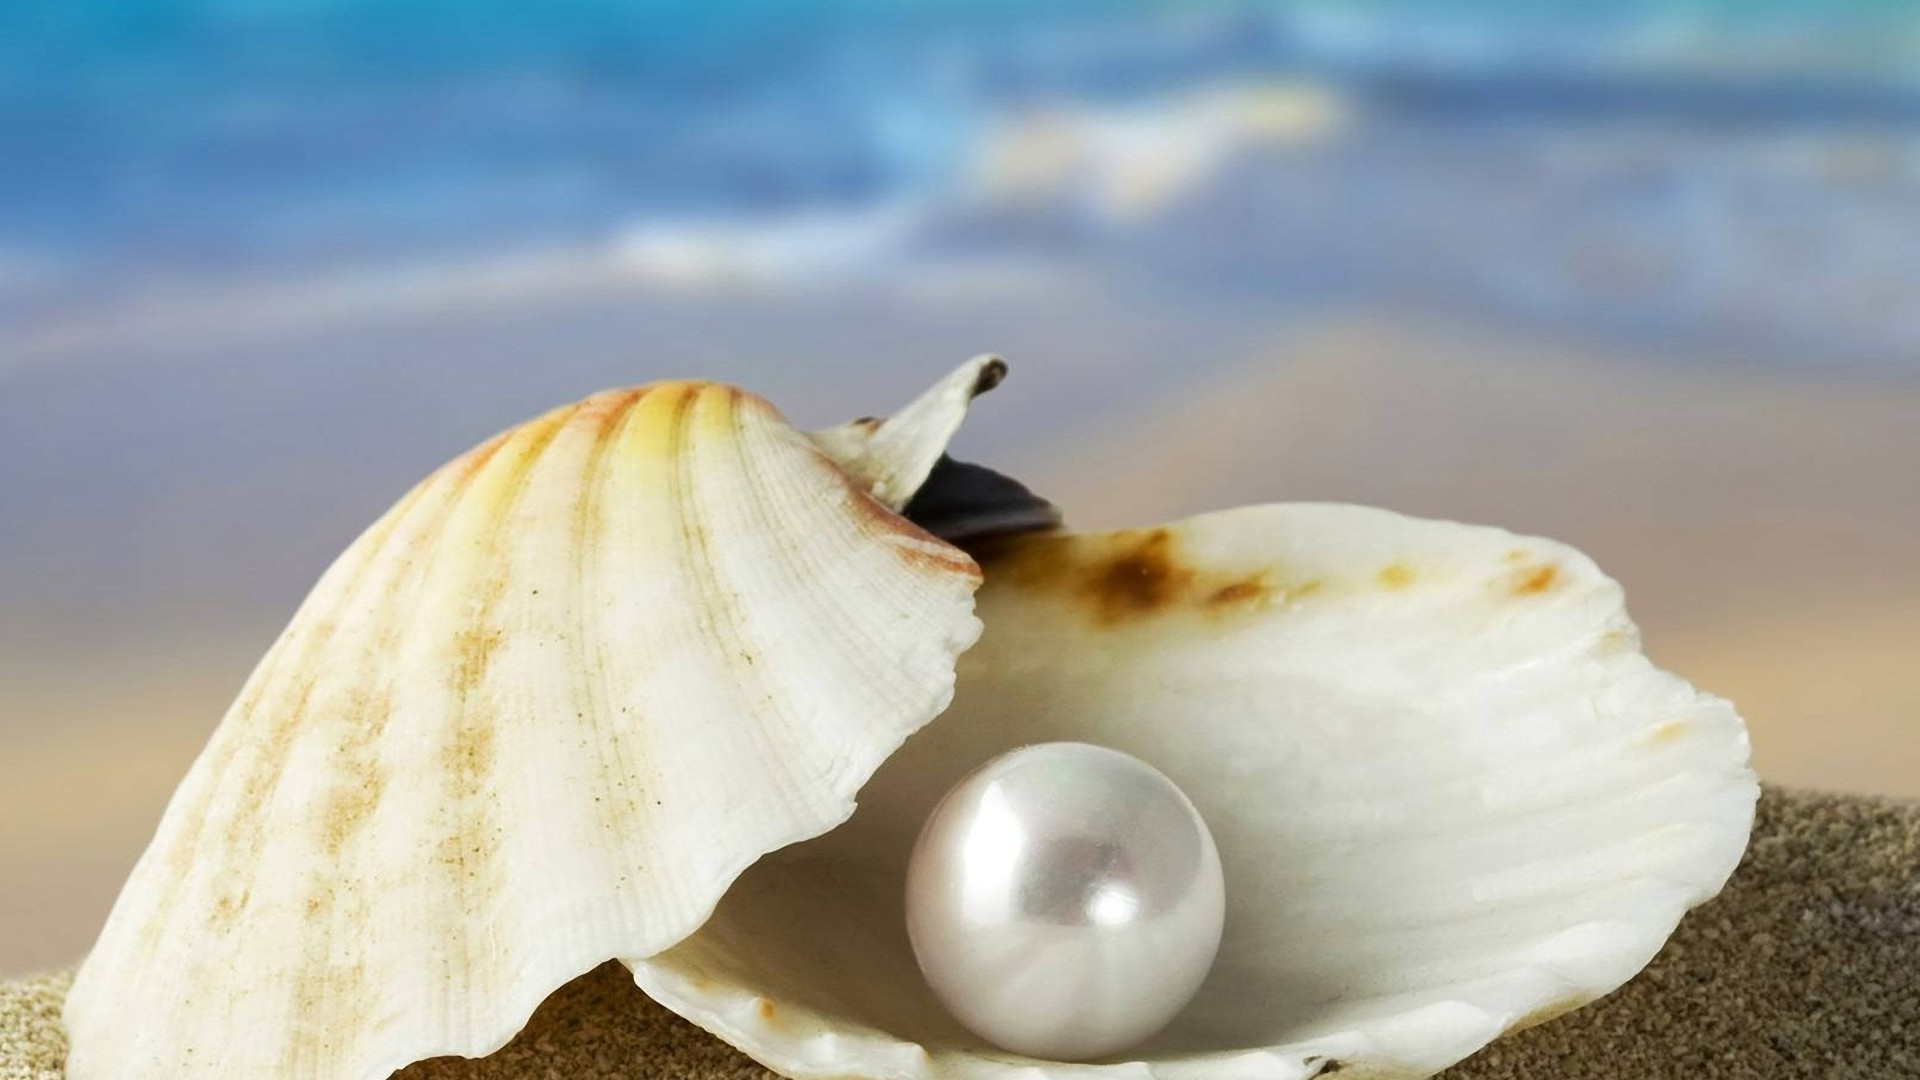 A pearl in the shell